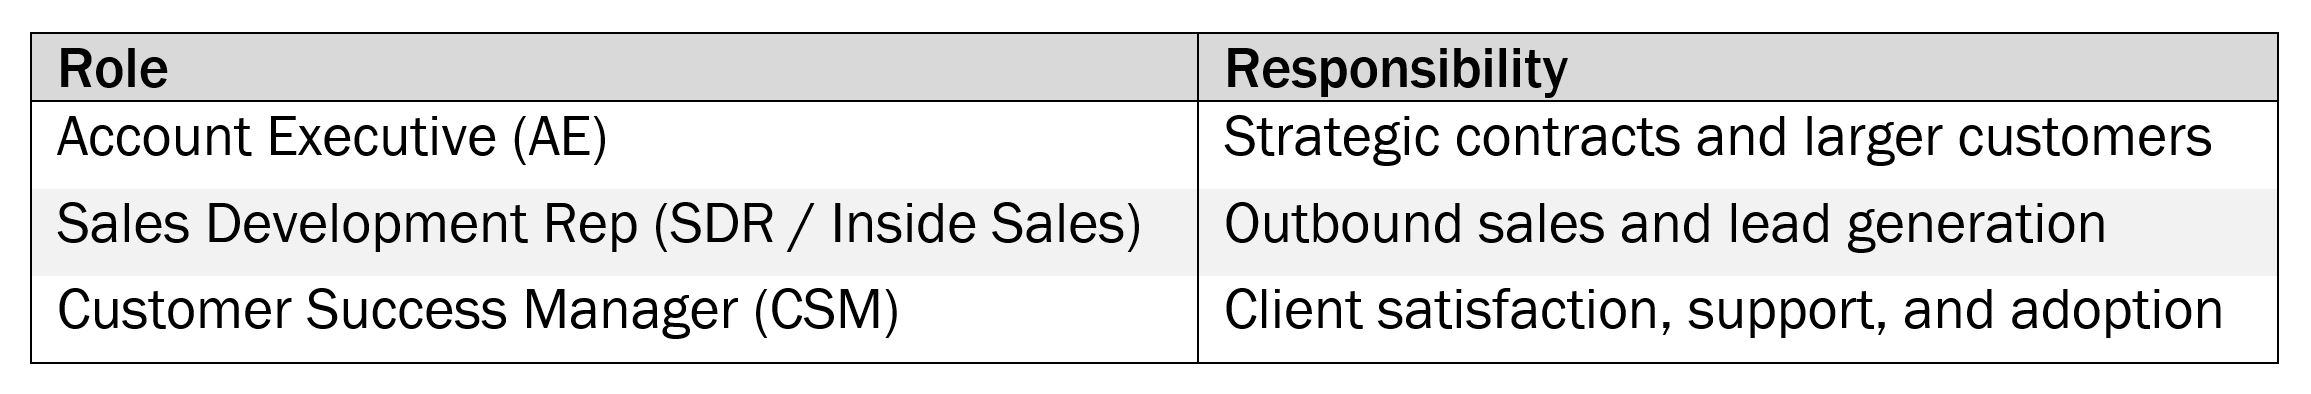 SaaS Roles and Responsibilities Table